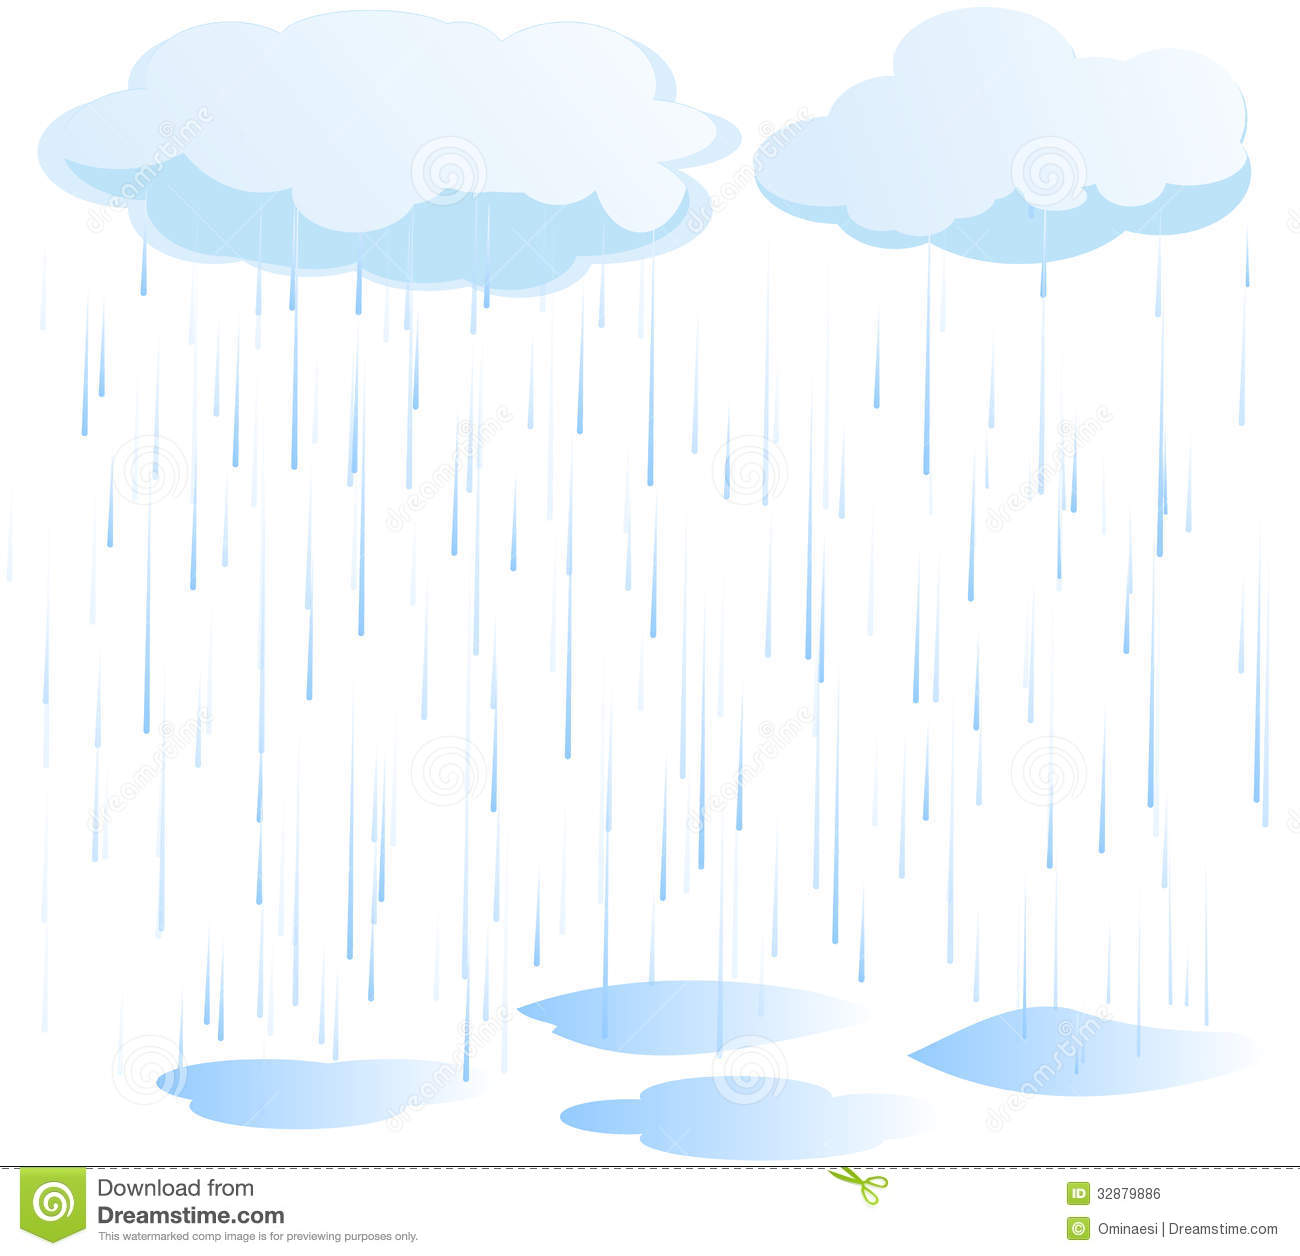 Rain Vector Royalty Free Stock Image - Image: 32879886